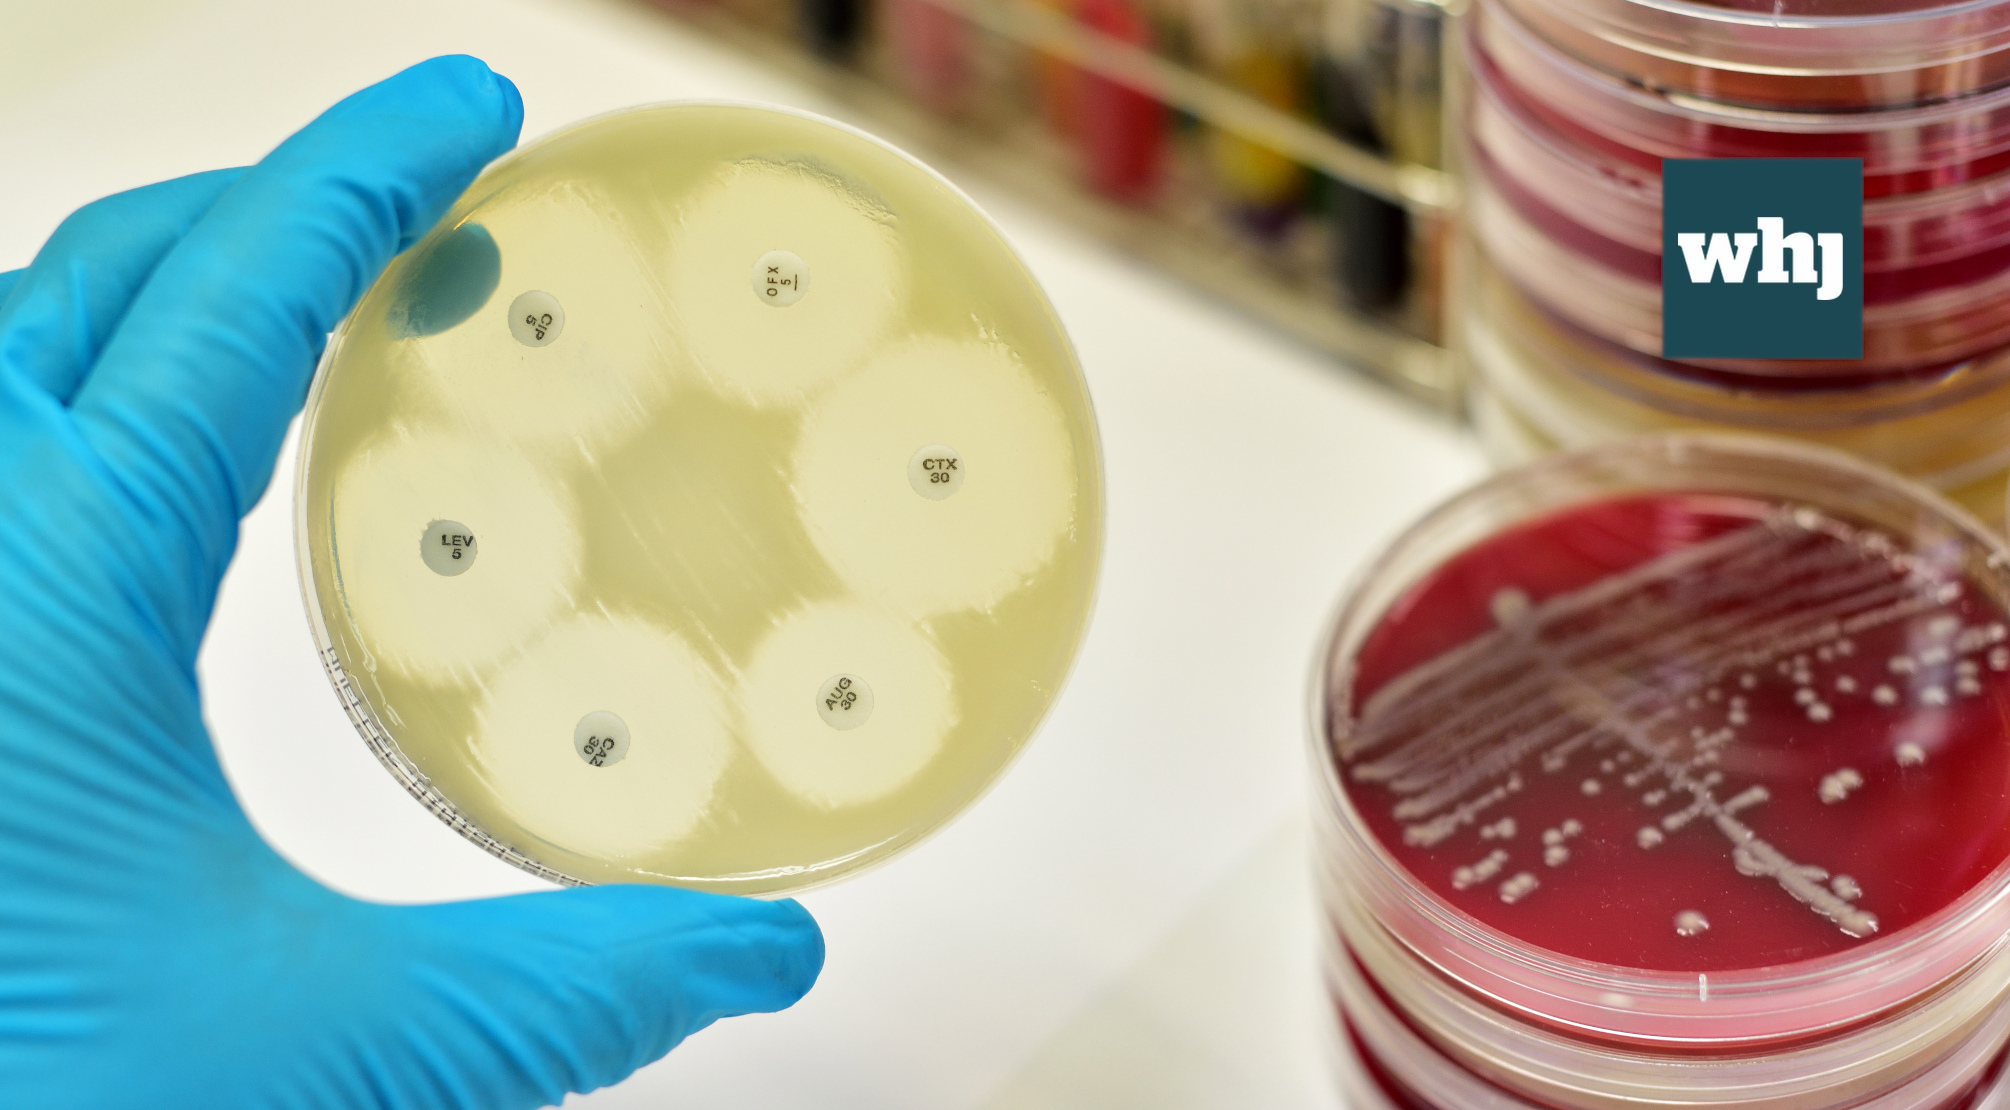 A silent tsunami is coming – it's time to stem the tide of AMR